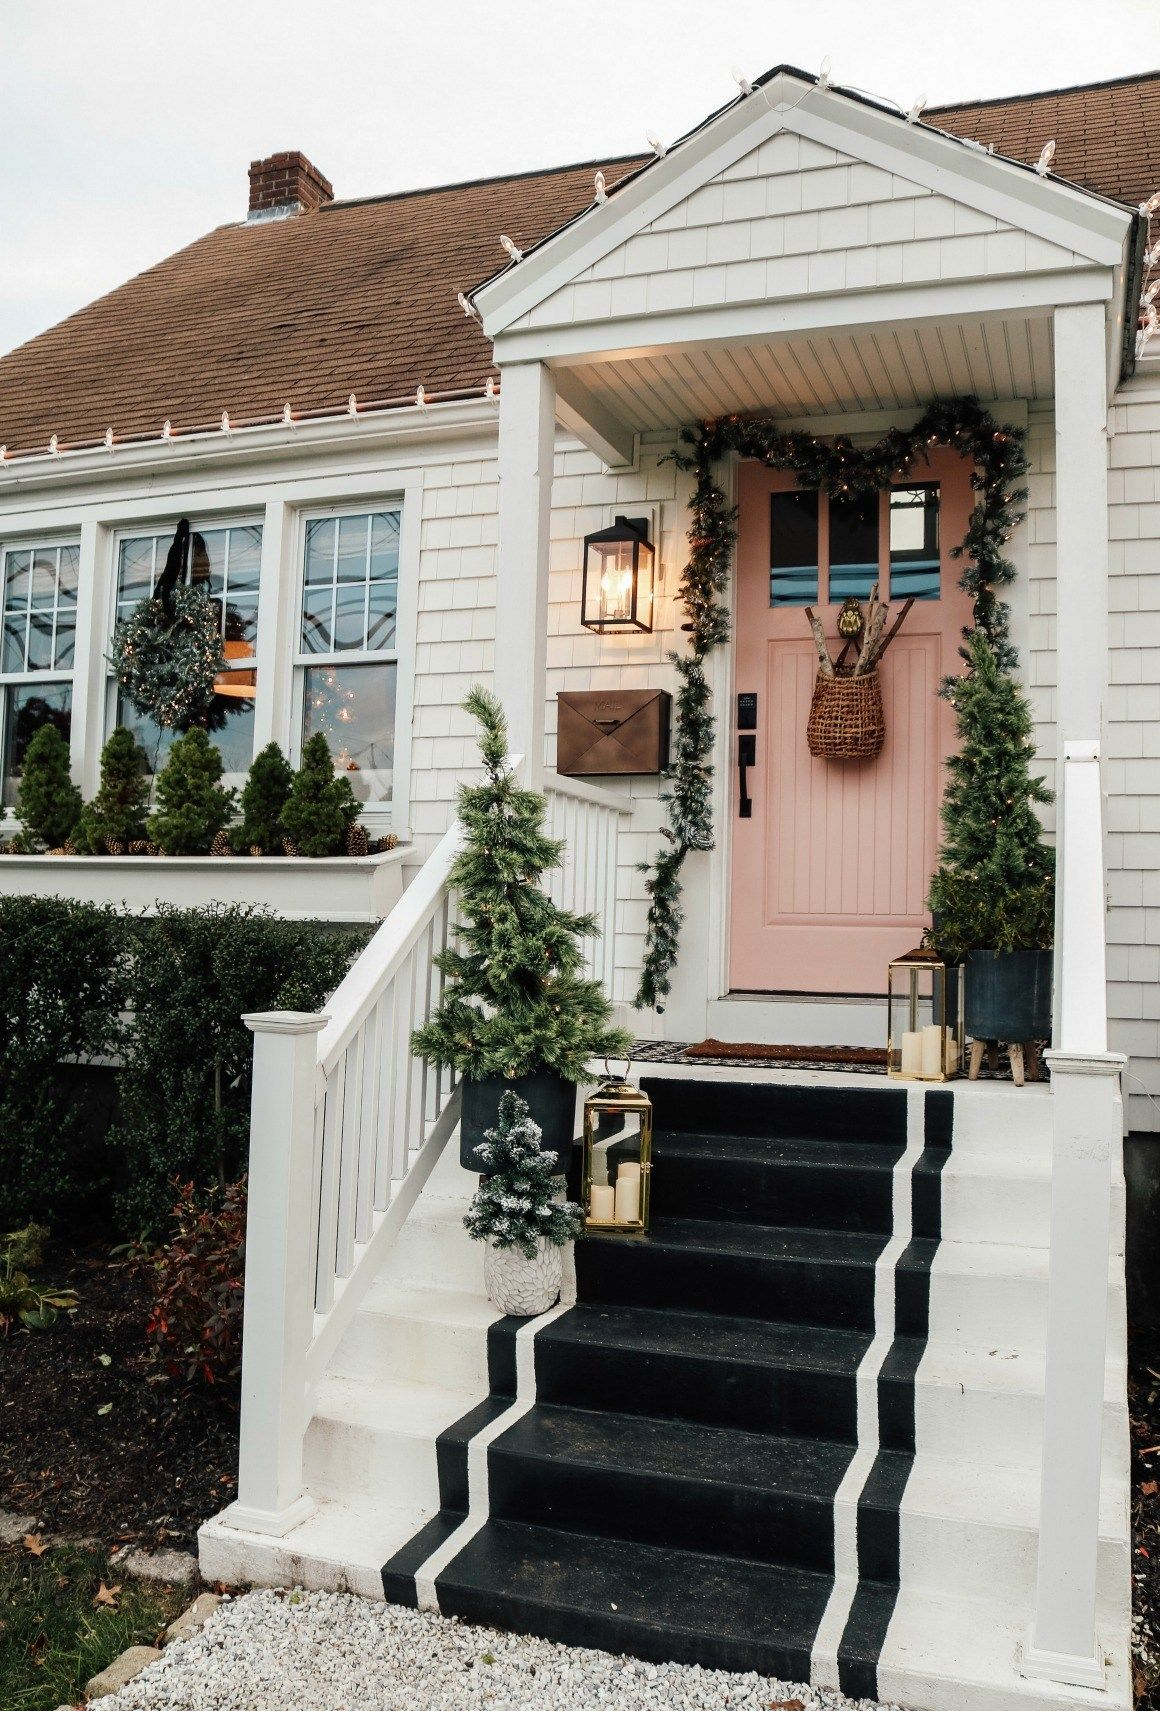 Decor on the Exterior of our Home Christmas Porch Decorating Ideas: Coastal classic Christmas ideas on the porch using flocked Christmas trees, rustic winter logs, and twinkly lights for a beautiful cozy Christmas entry and exterior!Christmas Porch Decorating Ideas: Coastal classic Christmas ideas on the porch using flocked Christmas trees, ru...